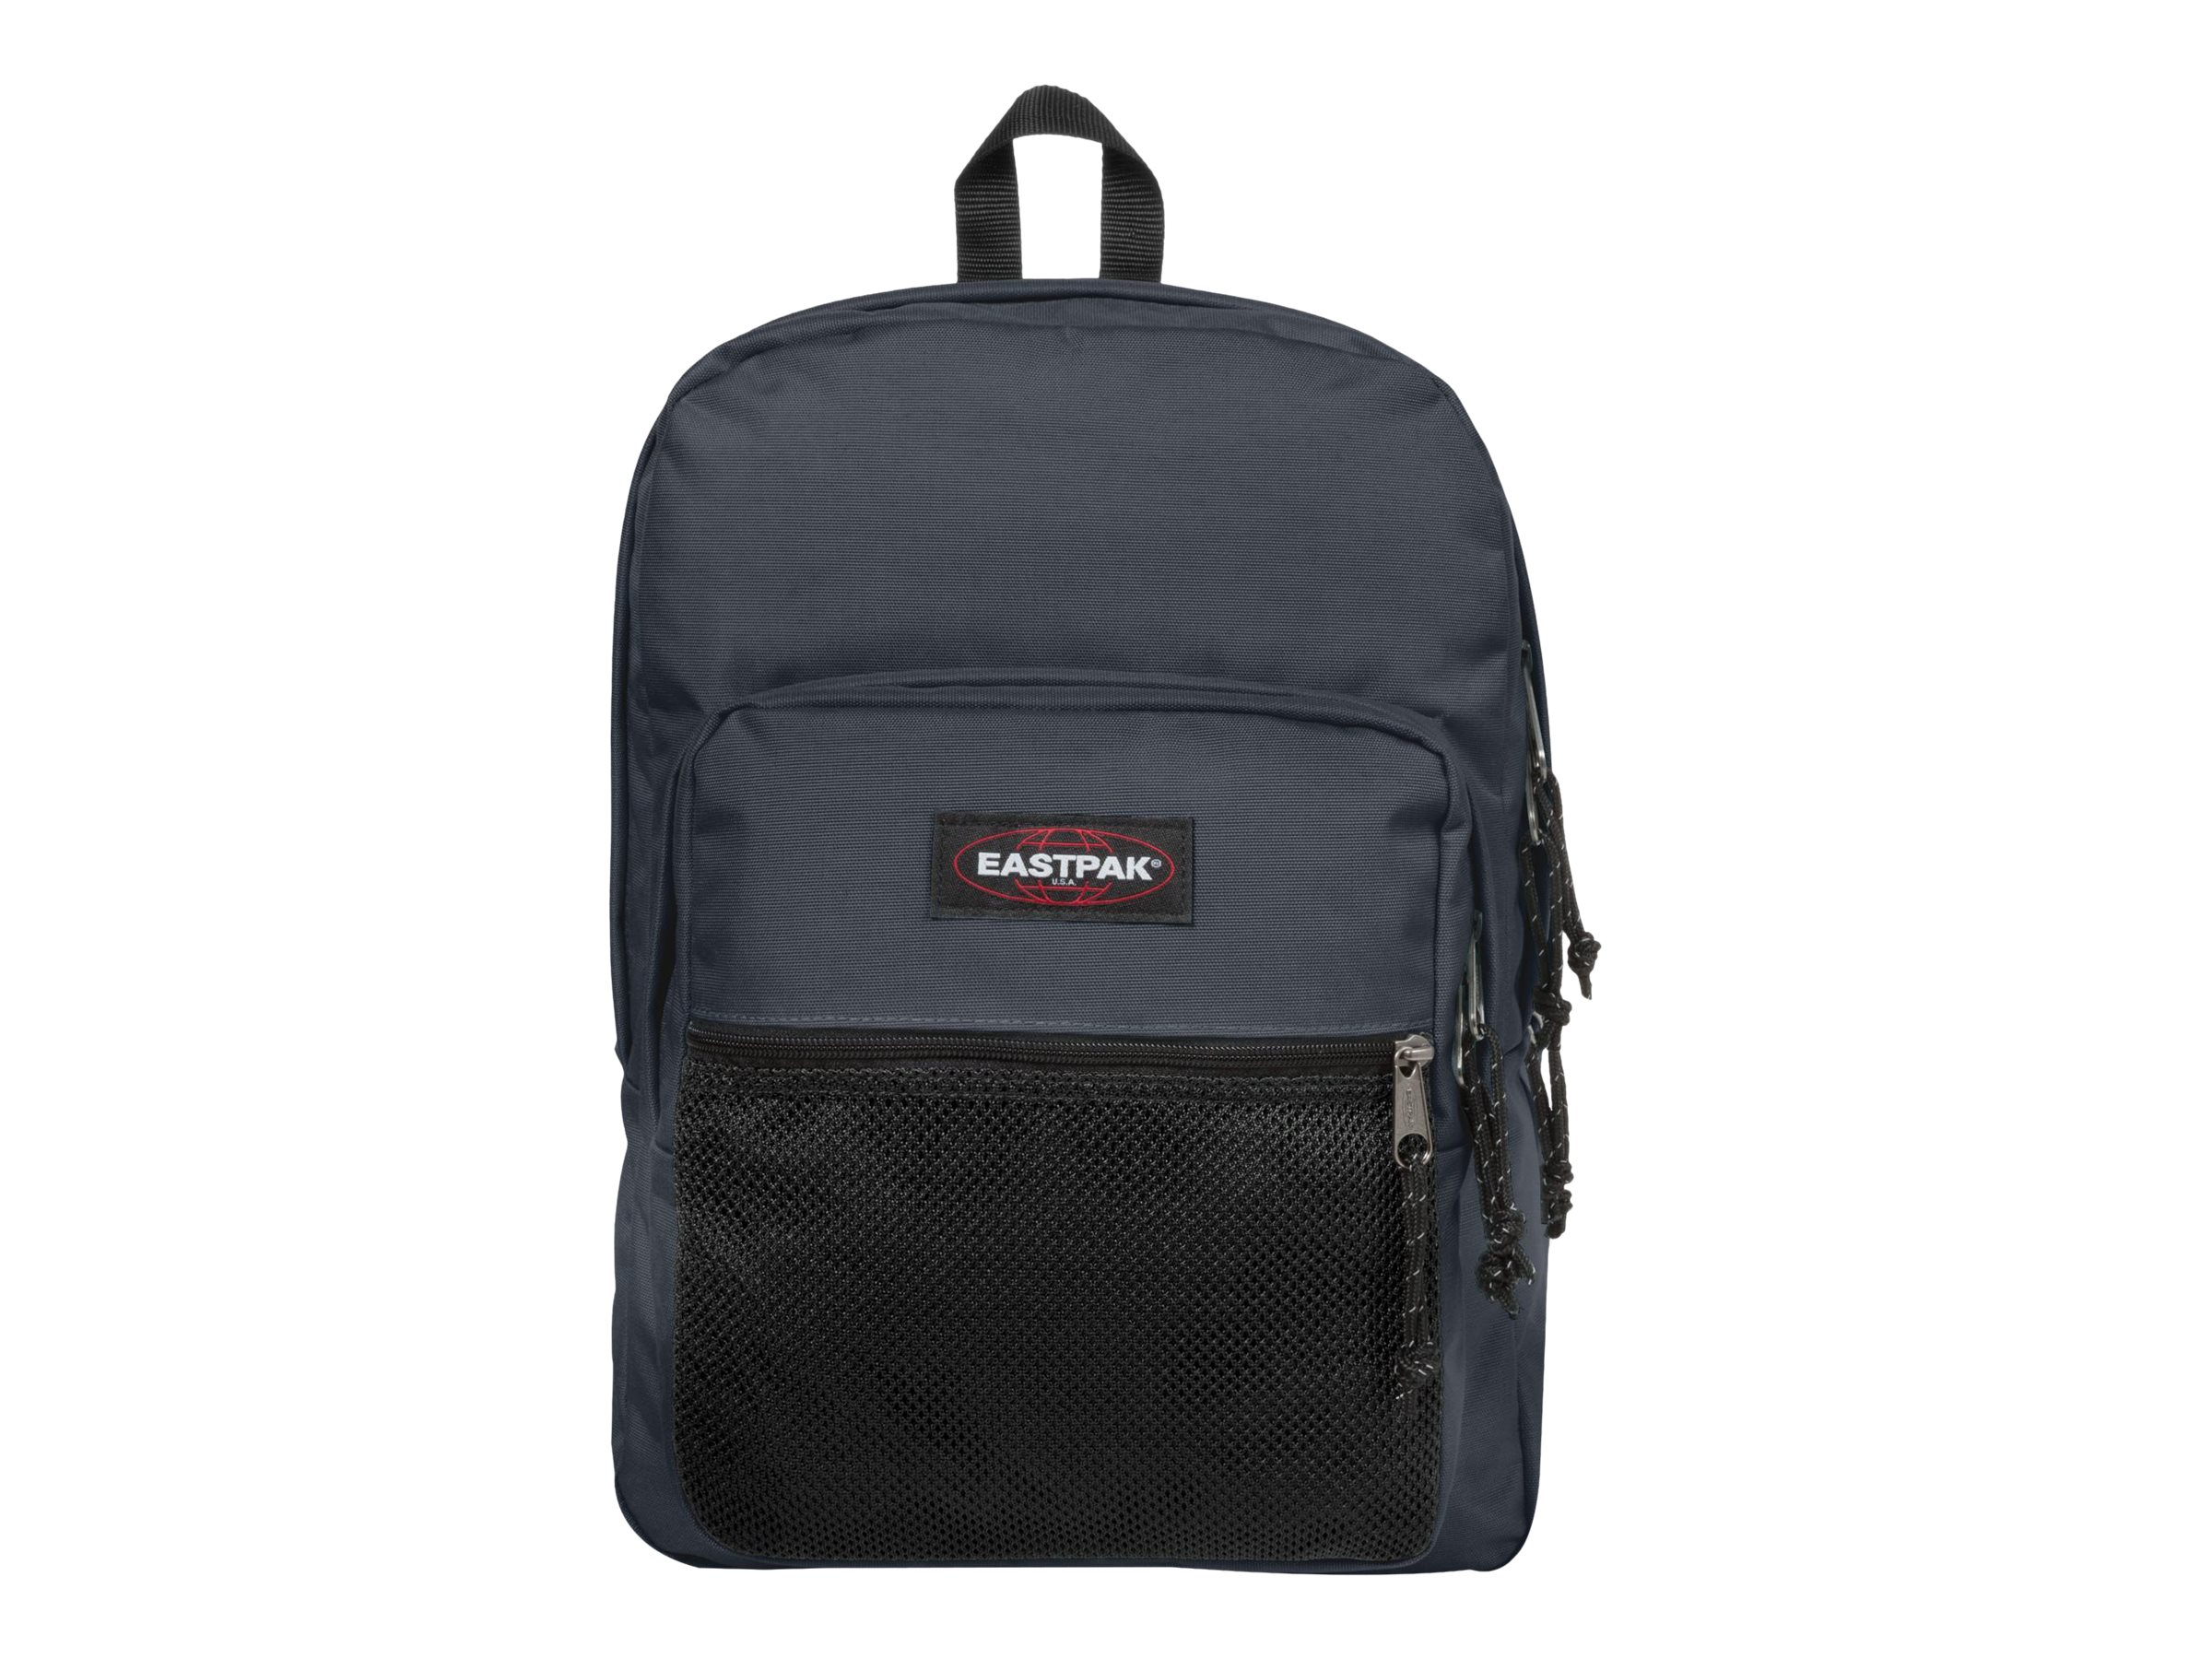 Pinnacle Eastpak Sac Midnight À Sacs Dos 42 Cm dvvrq1